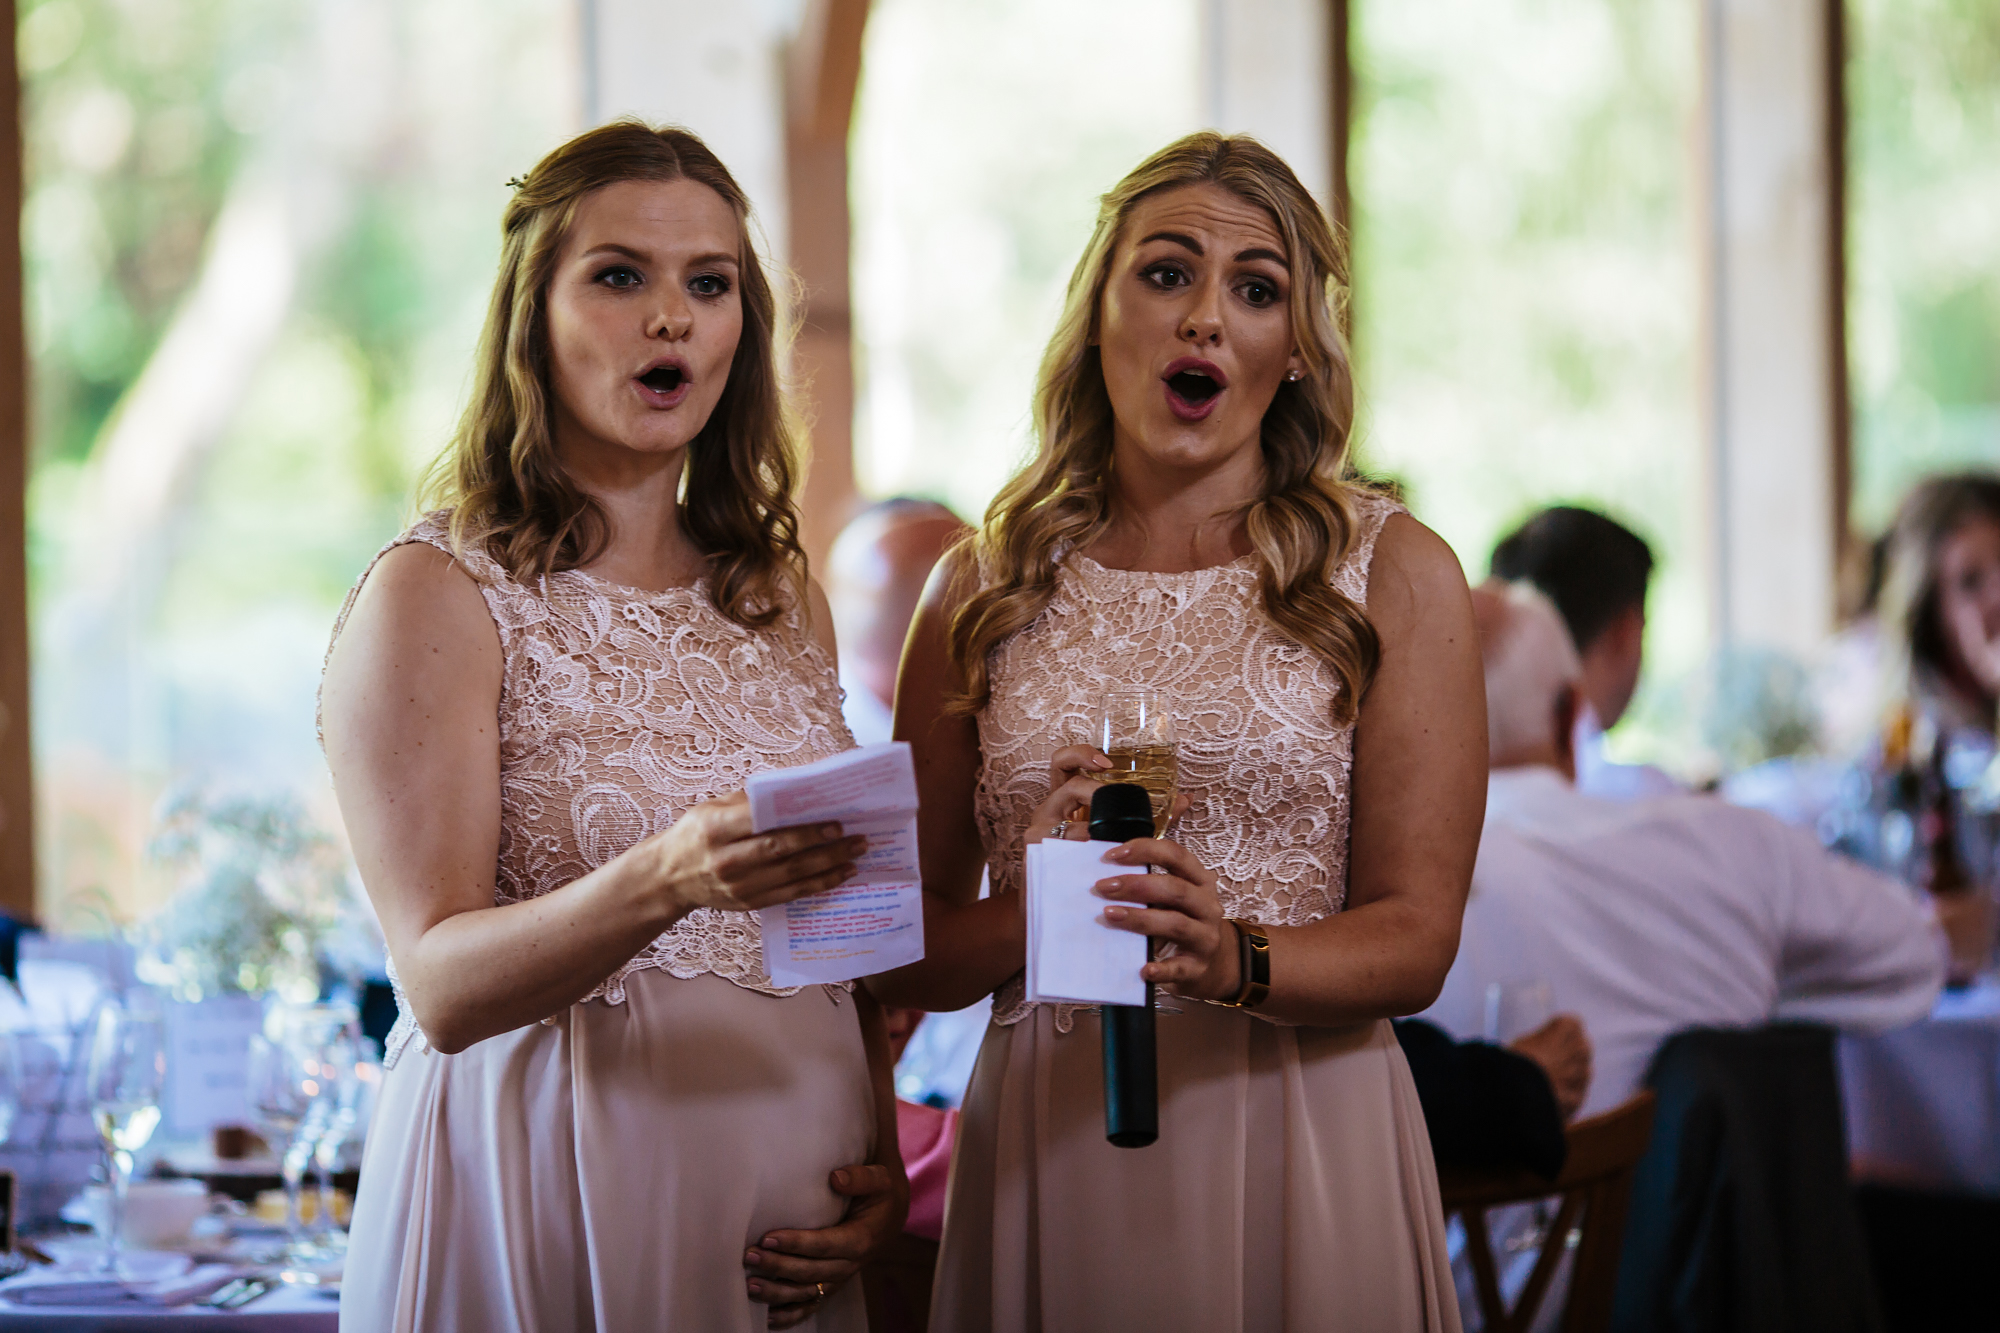 Singing bridesmaids at a wedding in Shropshire